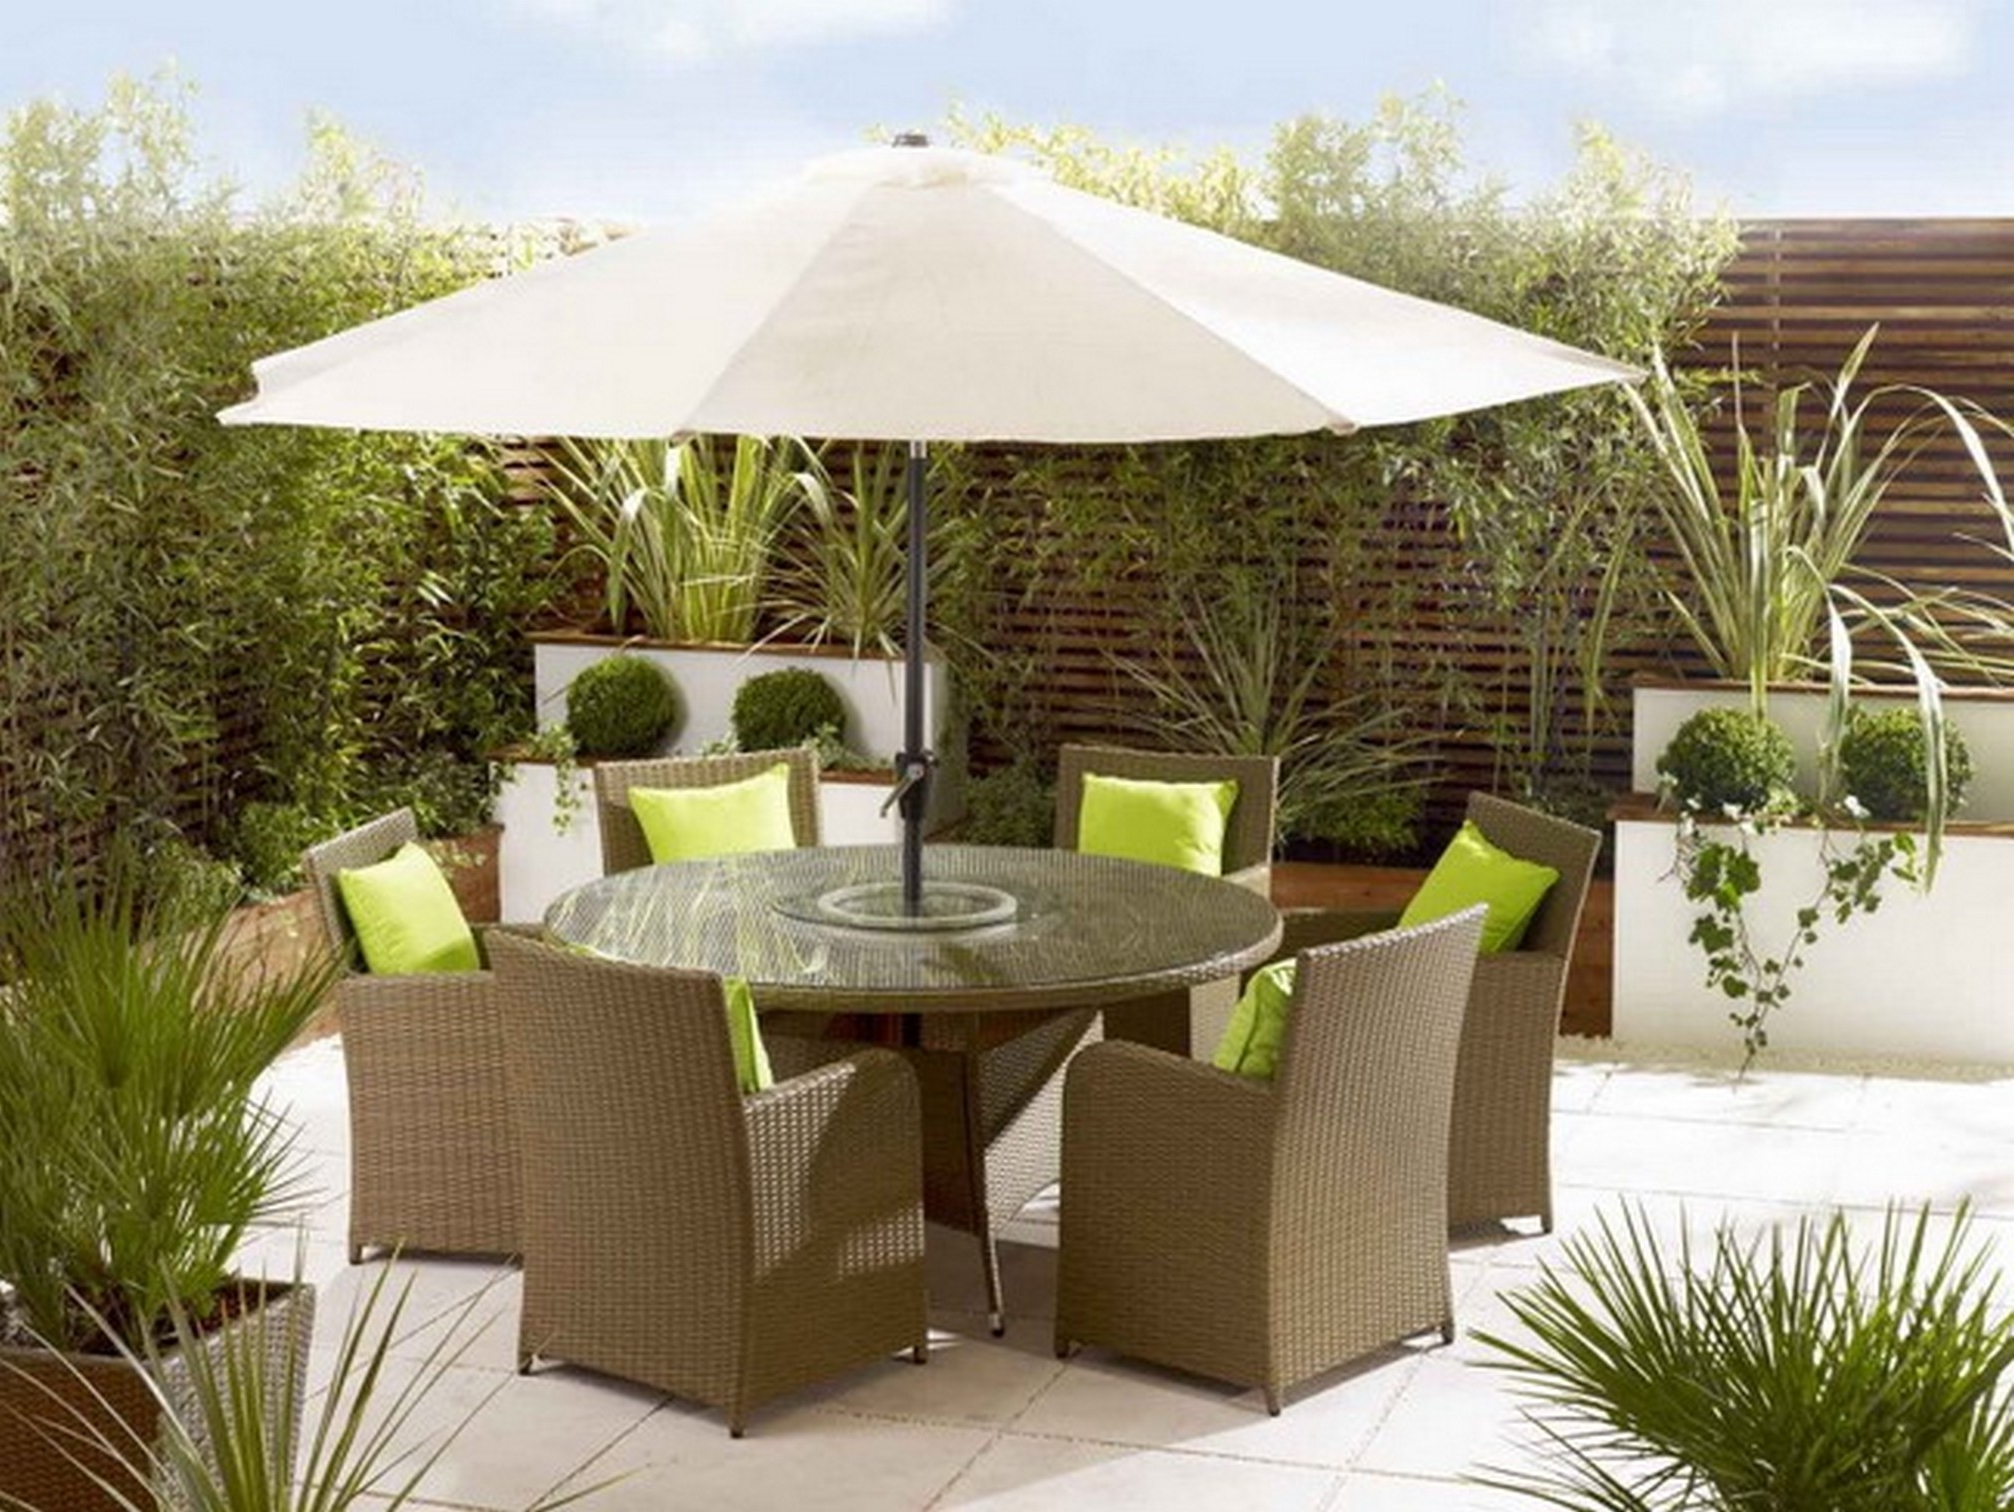 Patio Furniture Sets With Umbrellas With Recent Patio Furniture Sets With Umbrella — The Home Redesign : Patio Table (View 15 of 20)